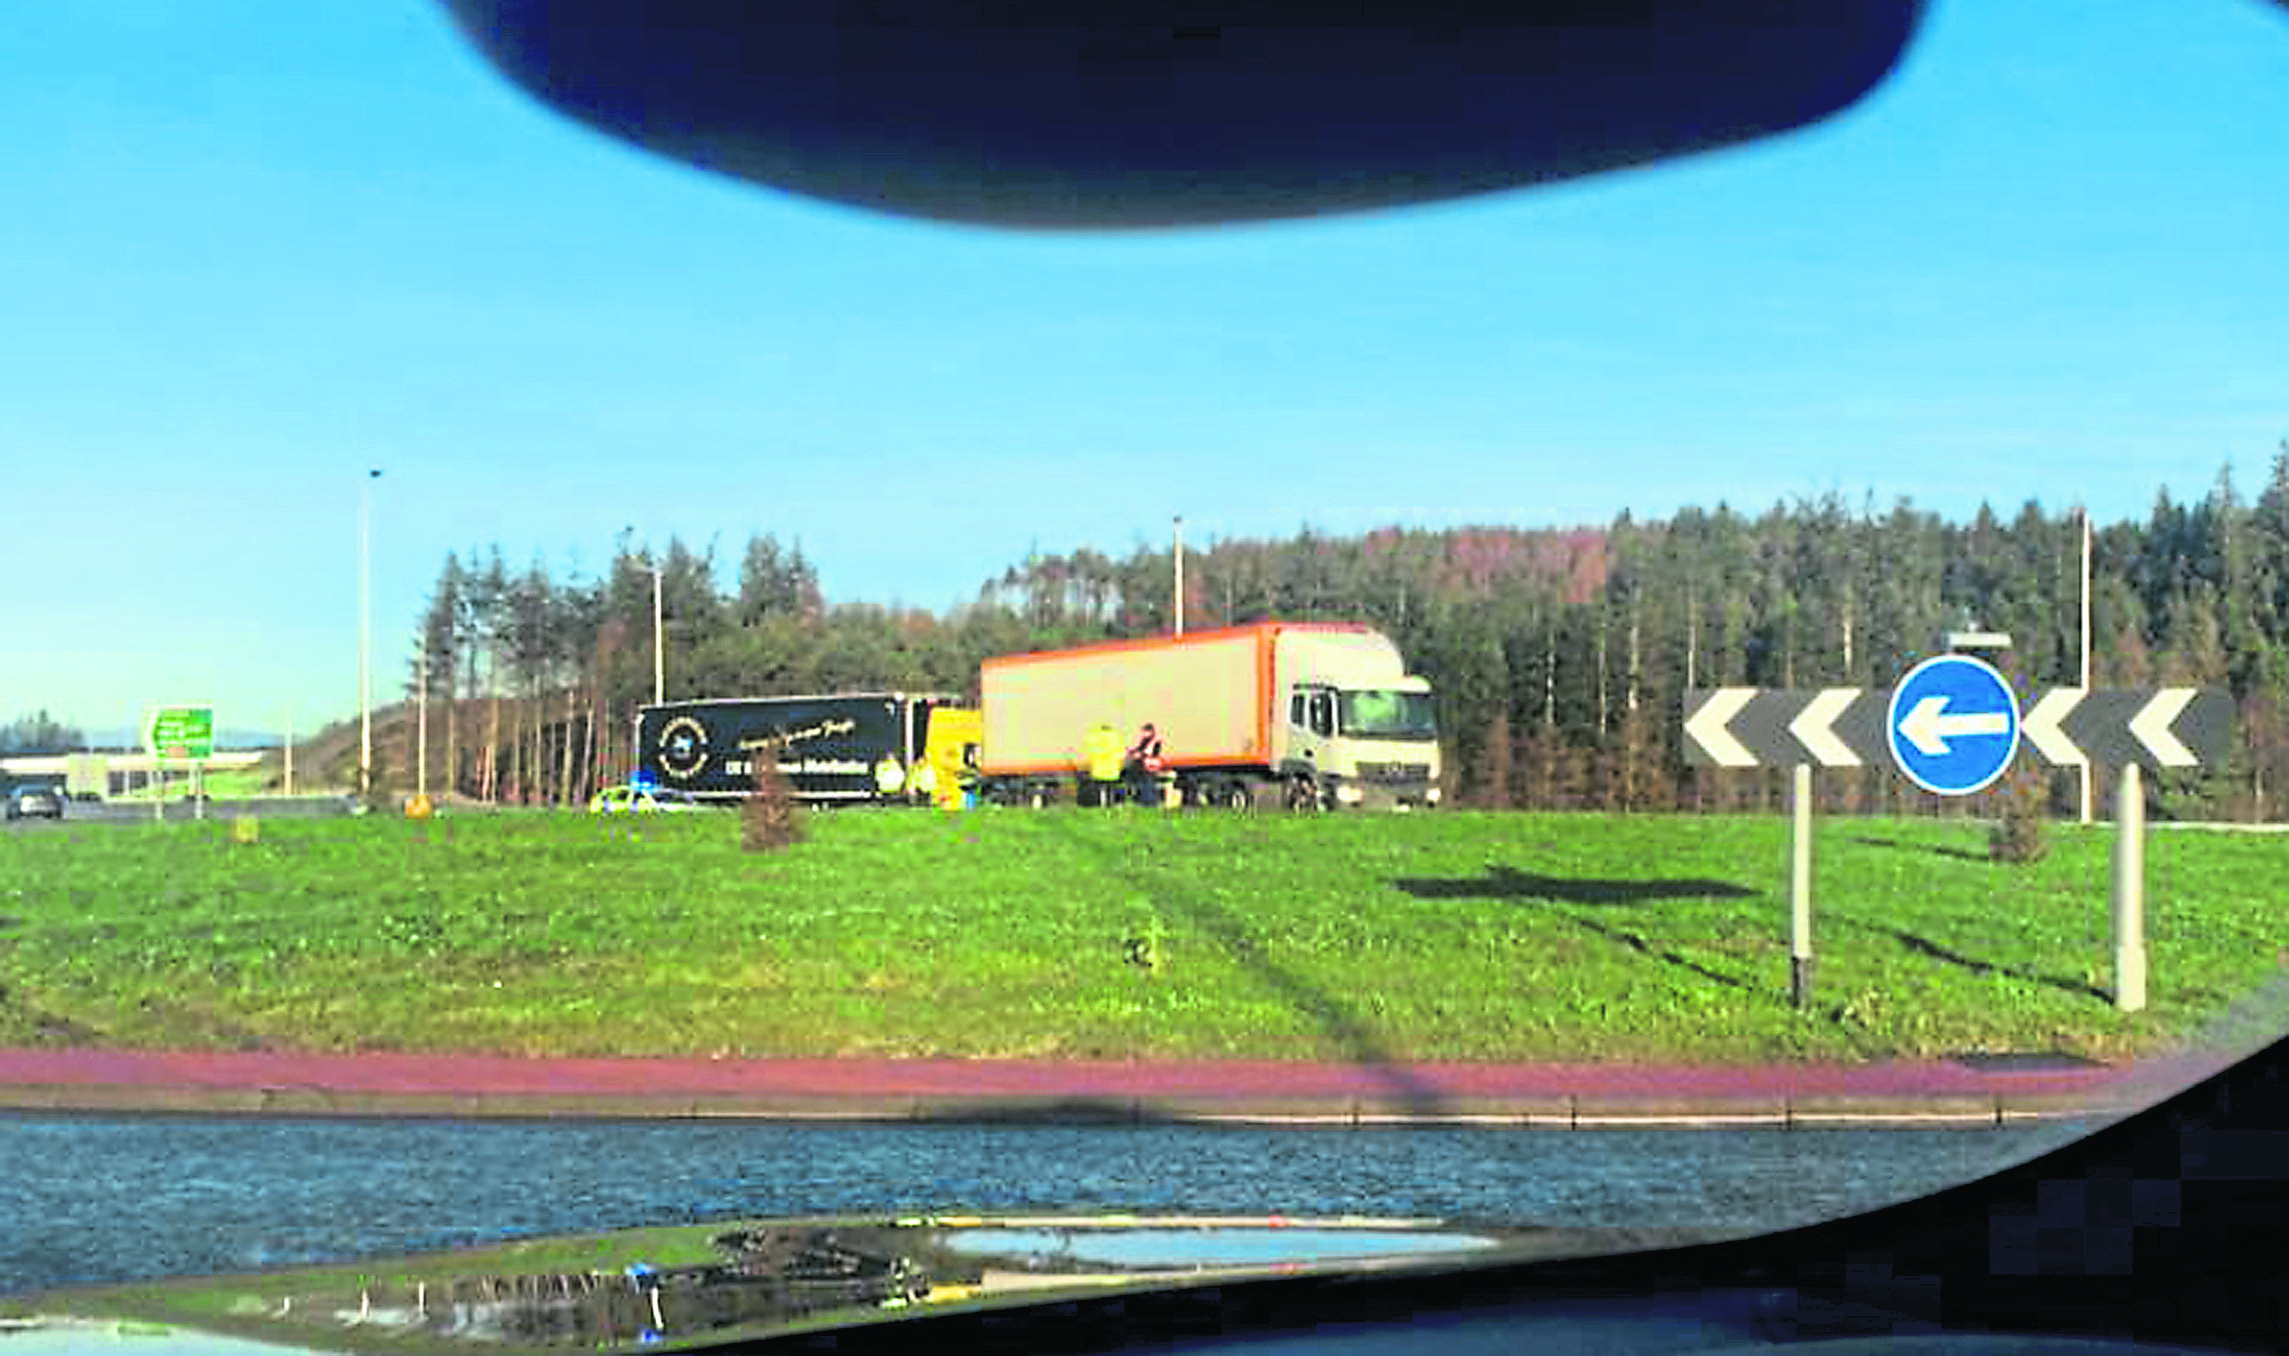 A lorry overshoots the road and ends up on the AWPR roundabout Pic by Joe Churcher